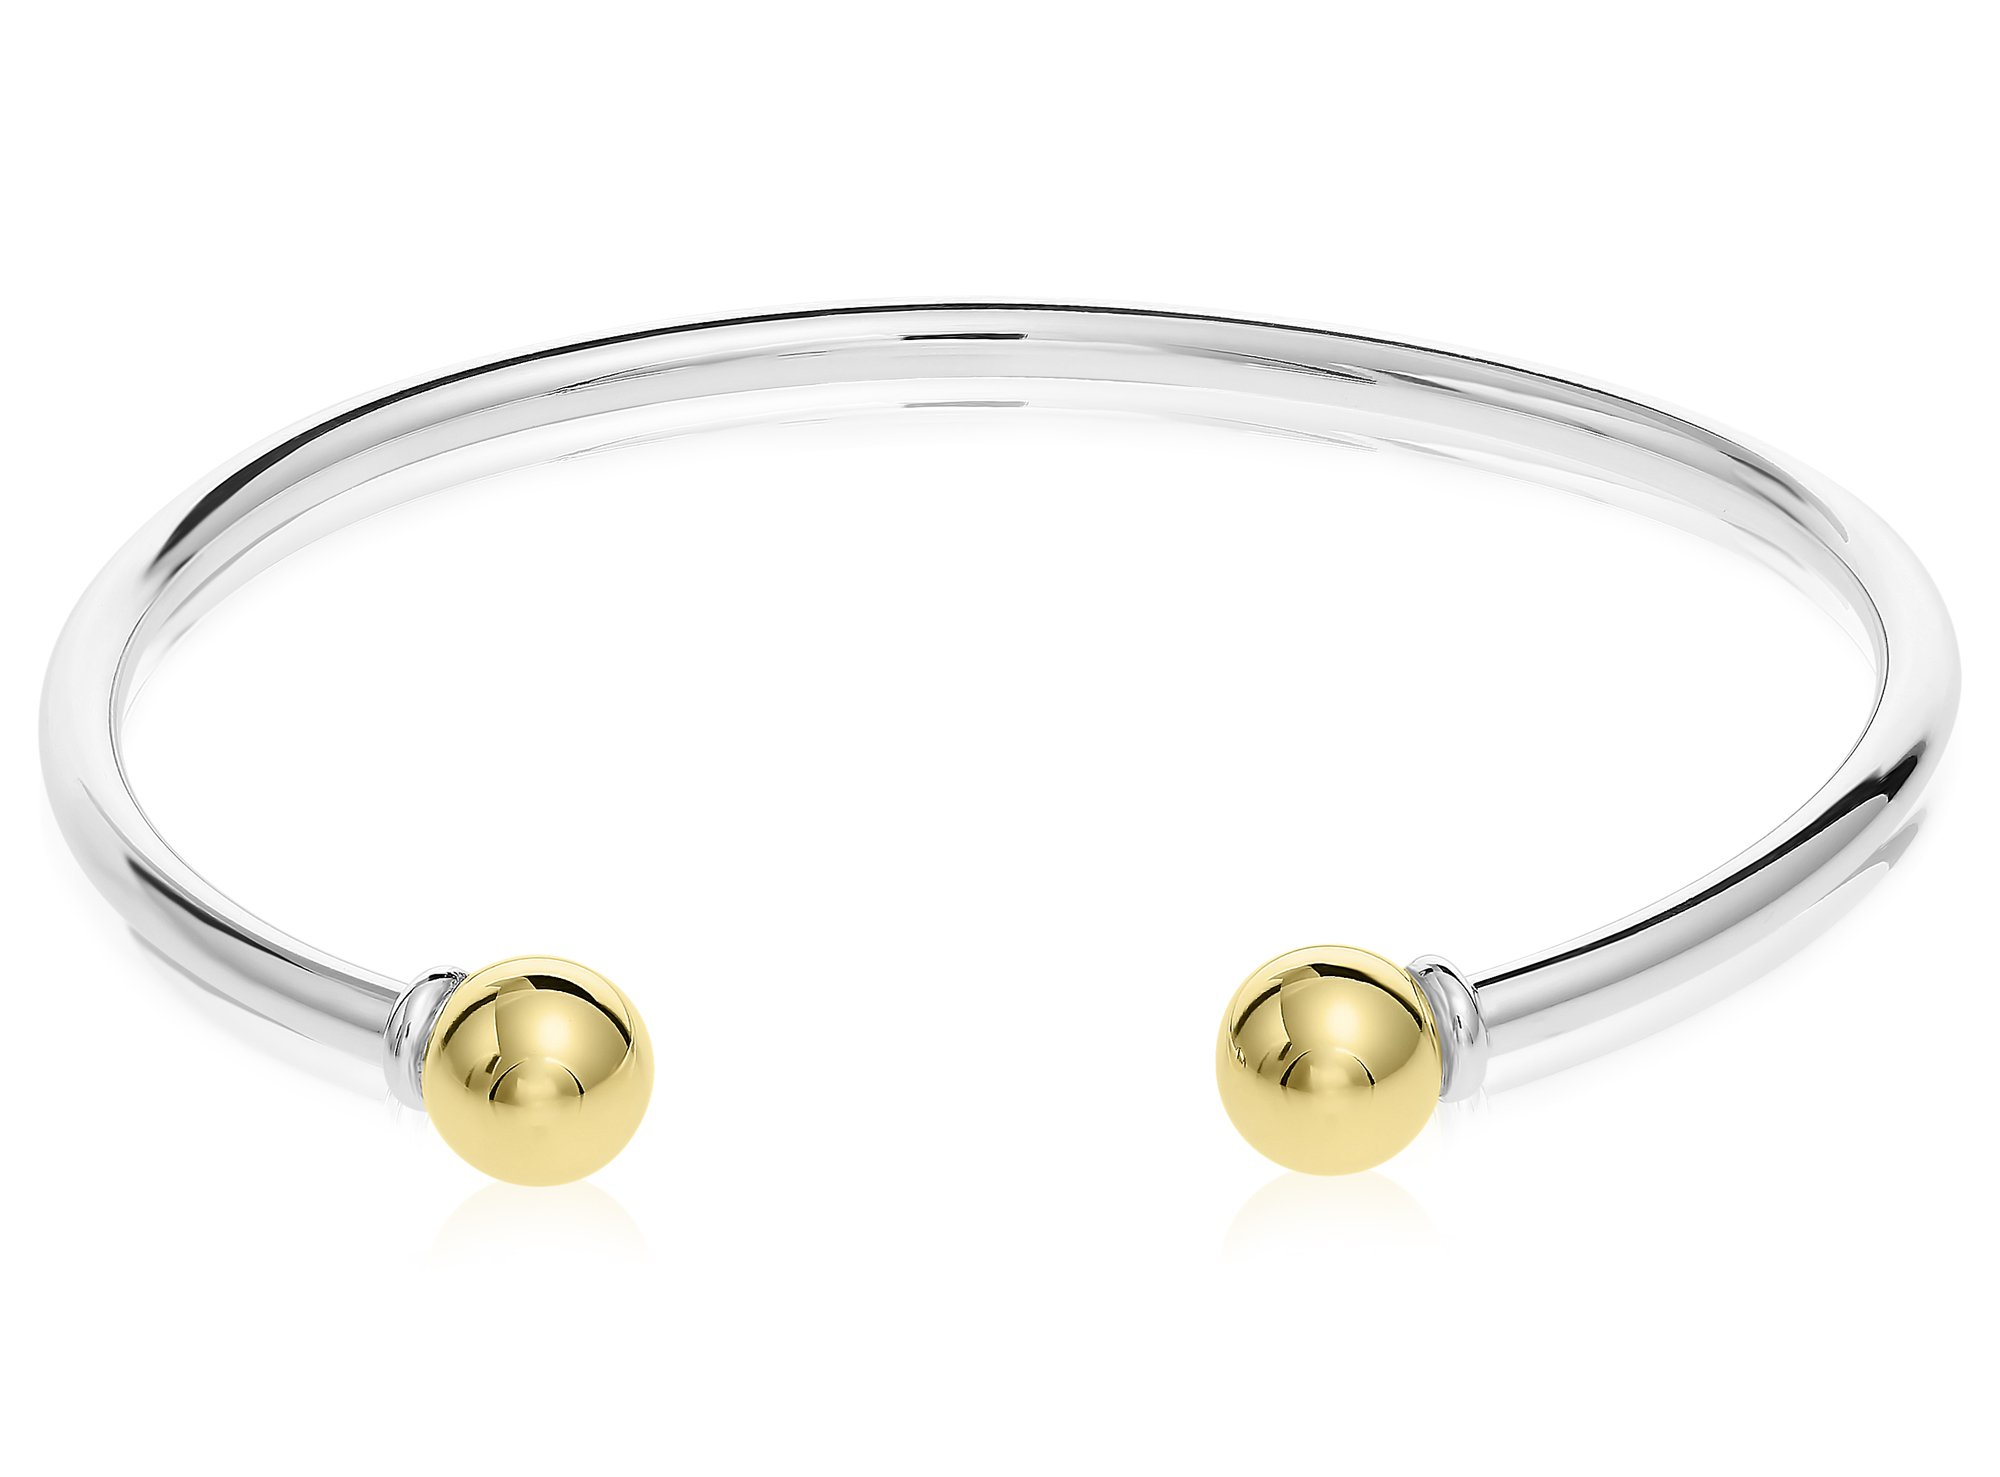 Unique royal jewelry Solid 925 Sterling Silver and 14k Gold 2-Ball Cuff Bracelet (Size 7) by Unique Royal Jewelry (Image #2)